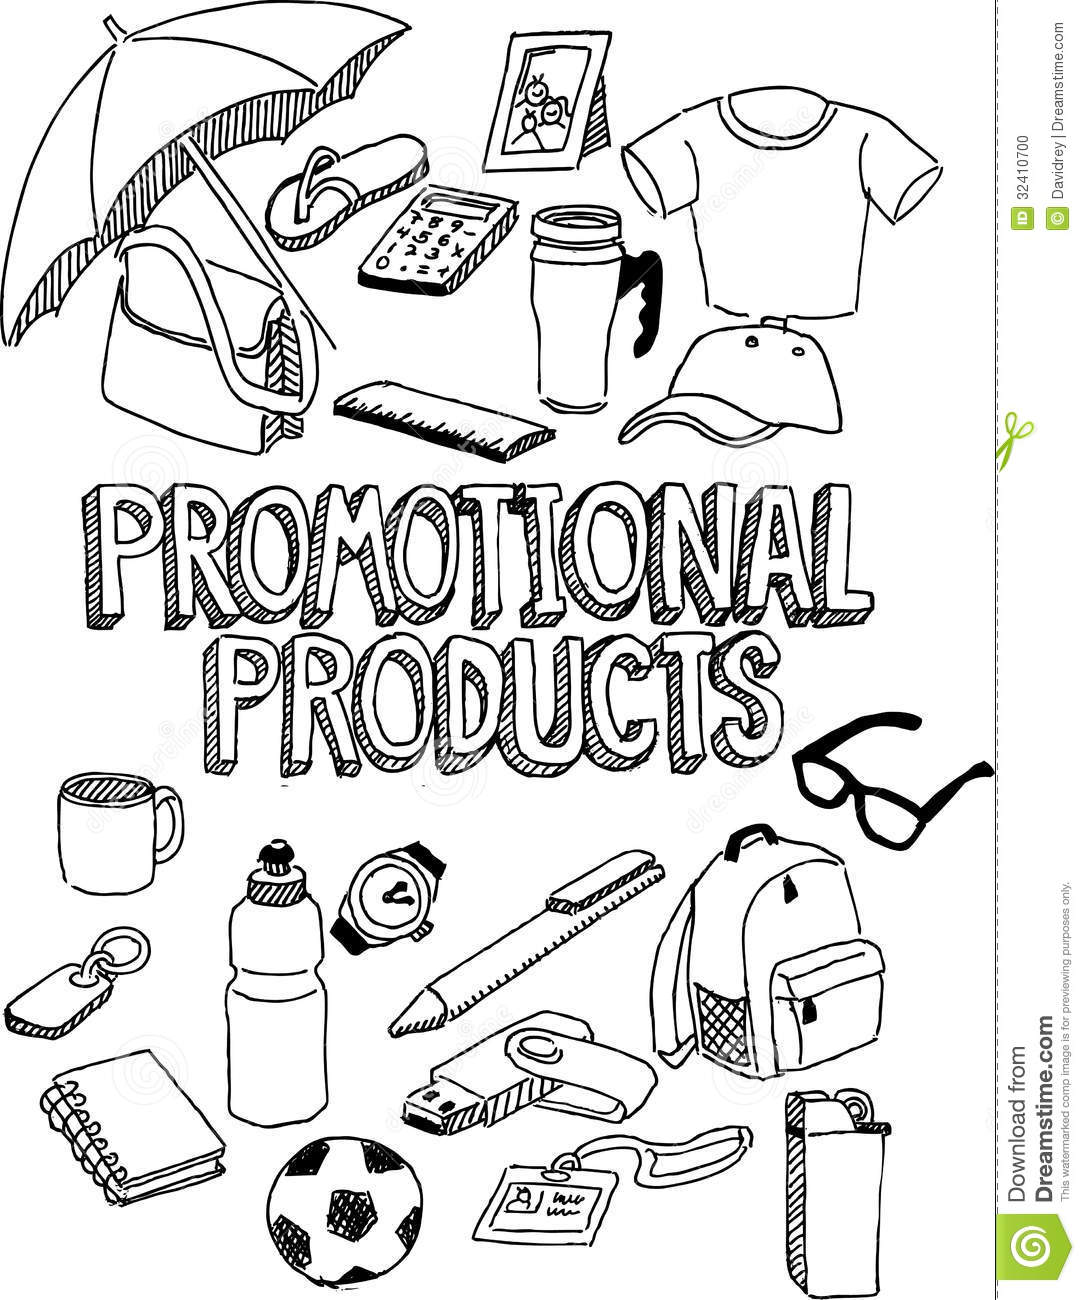 Promotional Products Doodle Stock Photo Image 32410700